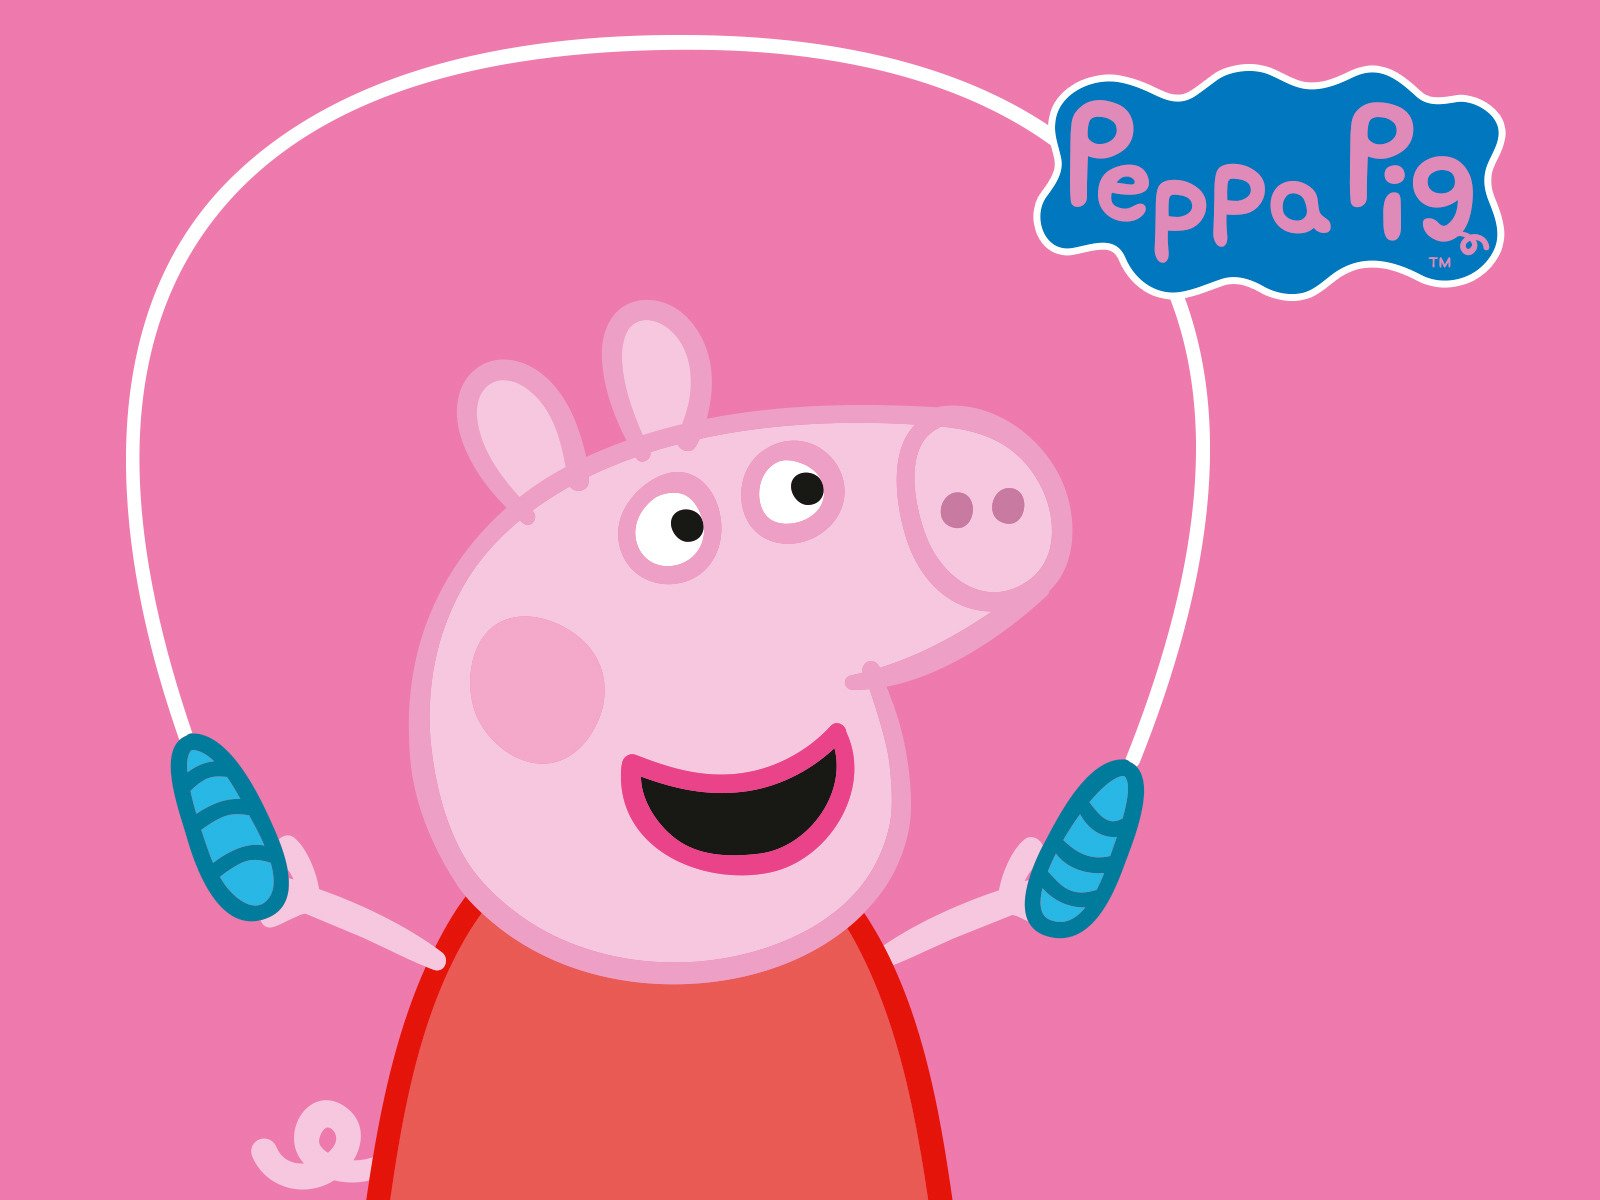 Amazon co uk: Watch Peppa Pig - Volume 5 | Prime Video